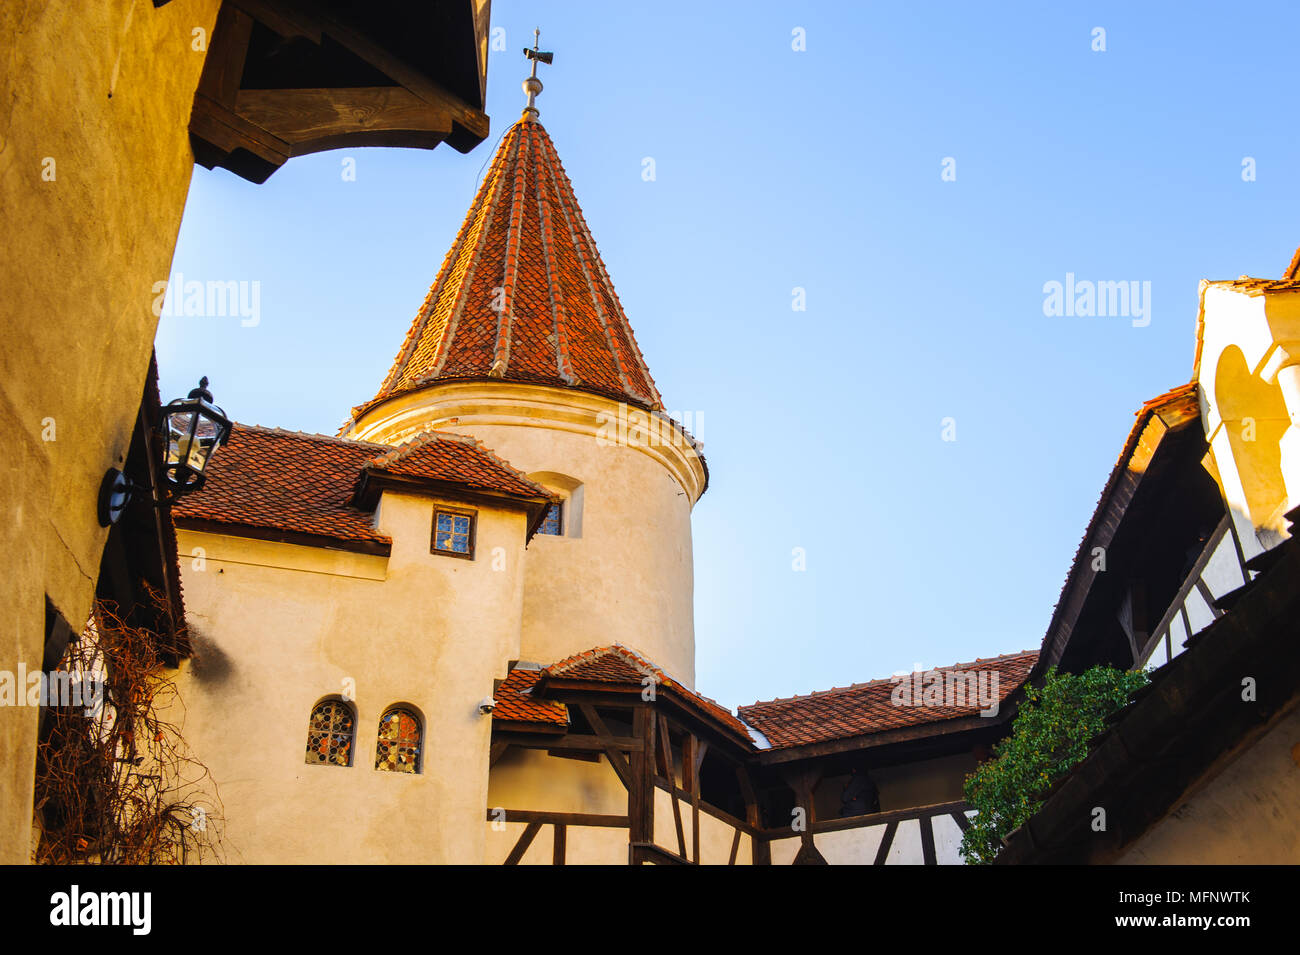 Tower of the Bran Castle, Transylvania, Romania - Stock Image